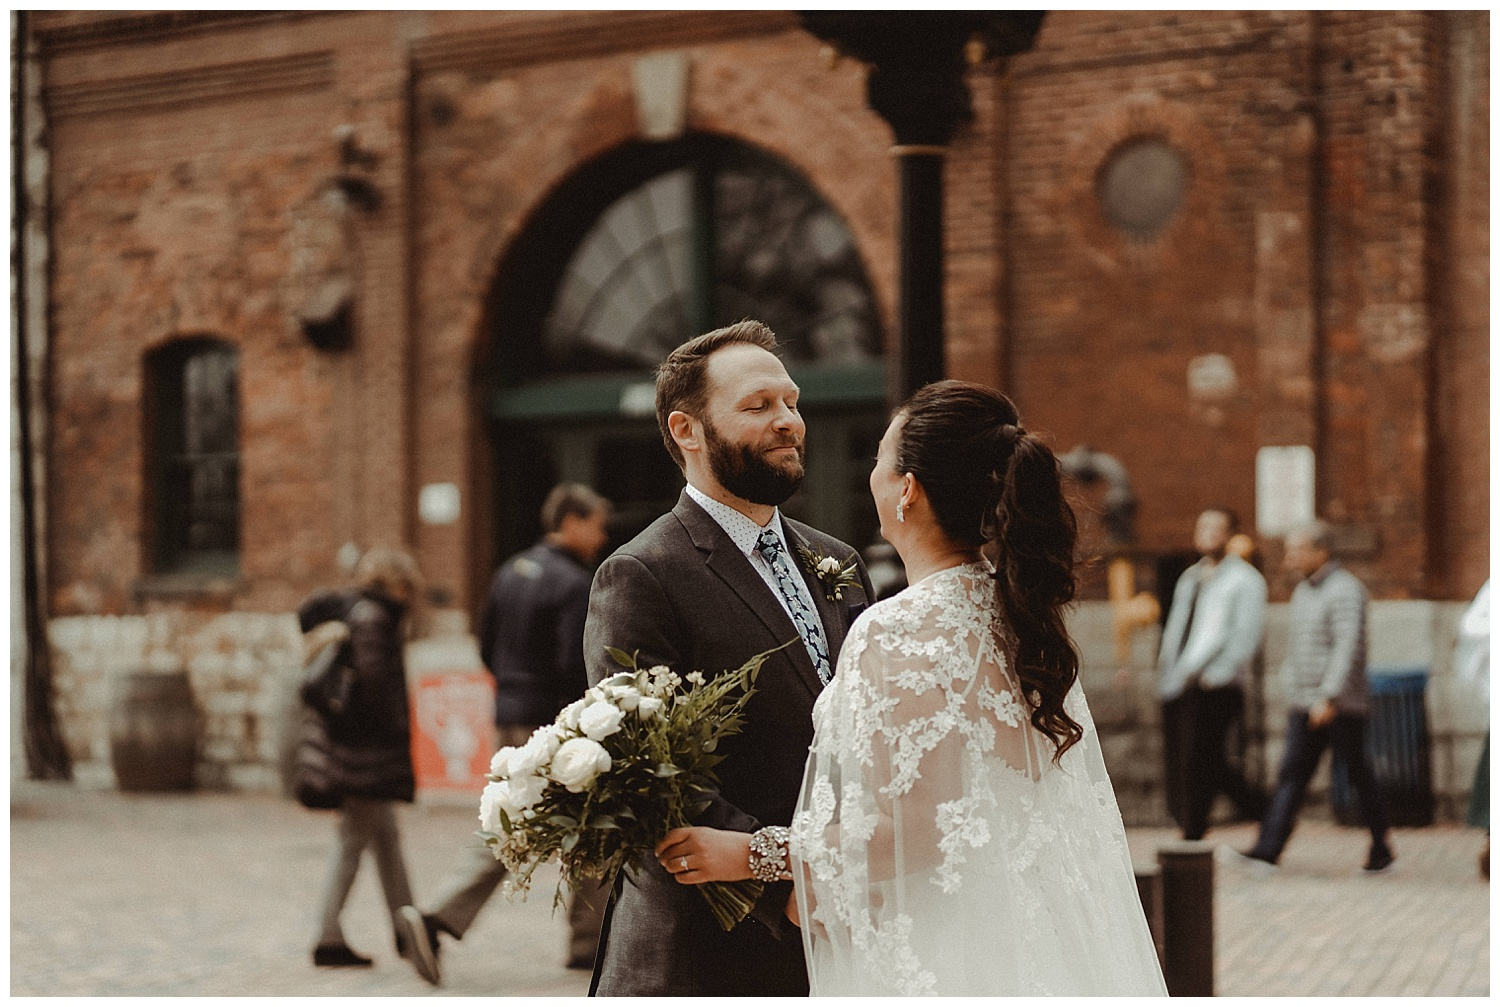 Katie Marie Photography | Archeo Wedding Arta Gallery Wedding | Distillery District Wedding | Toronto Wedding Photographer | Hamilton Toronto Ontario Wedding Photographer |_0010.jpg